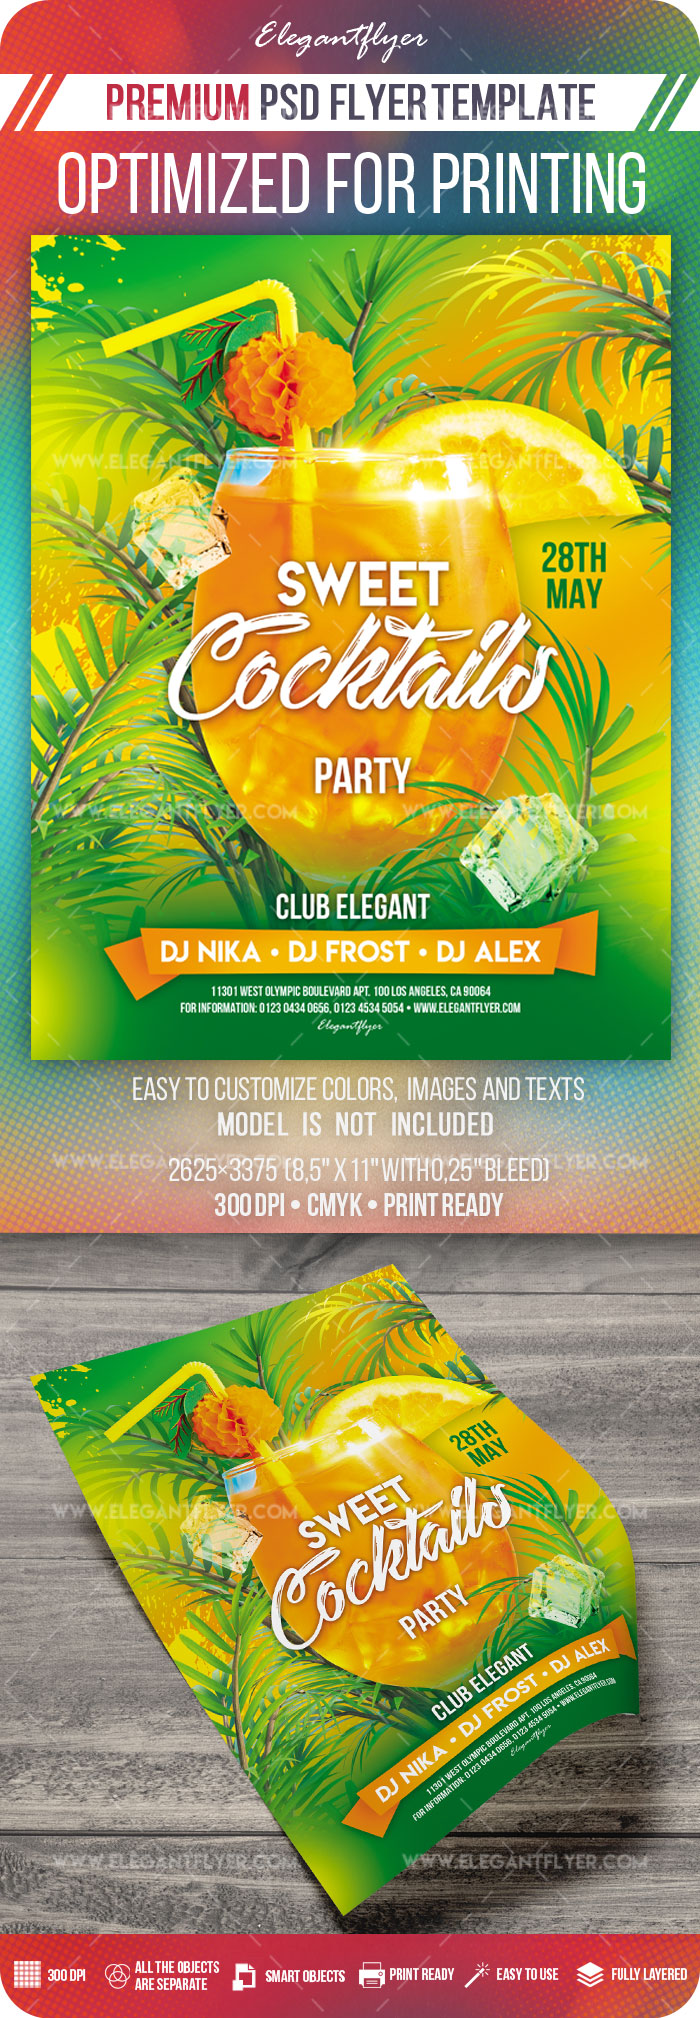 Sweet Cocktails Party – Premium PSD Flyer Template